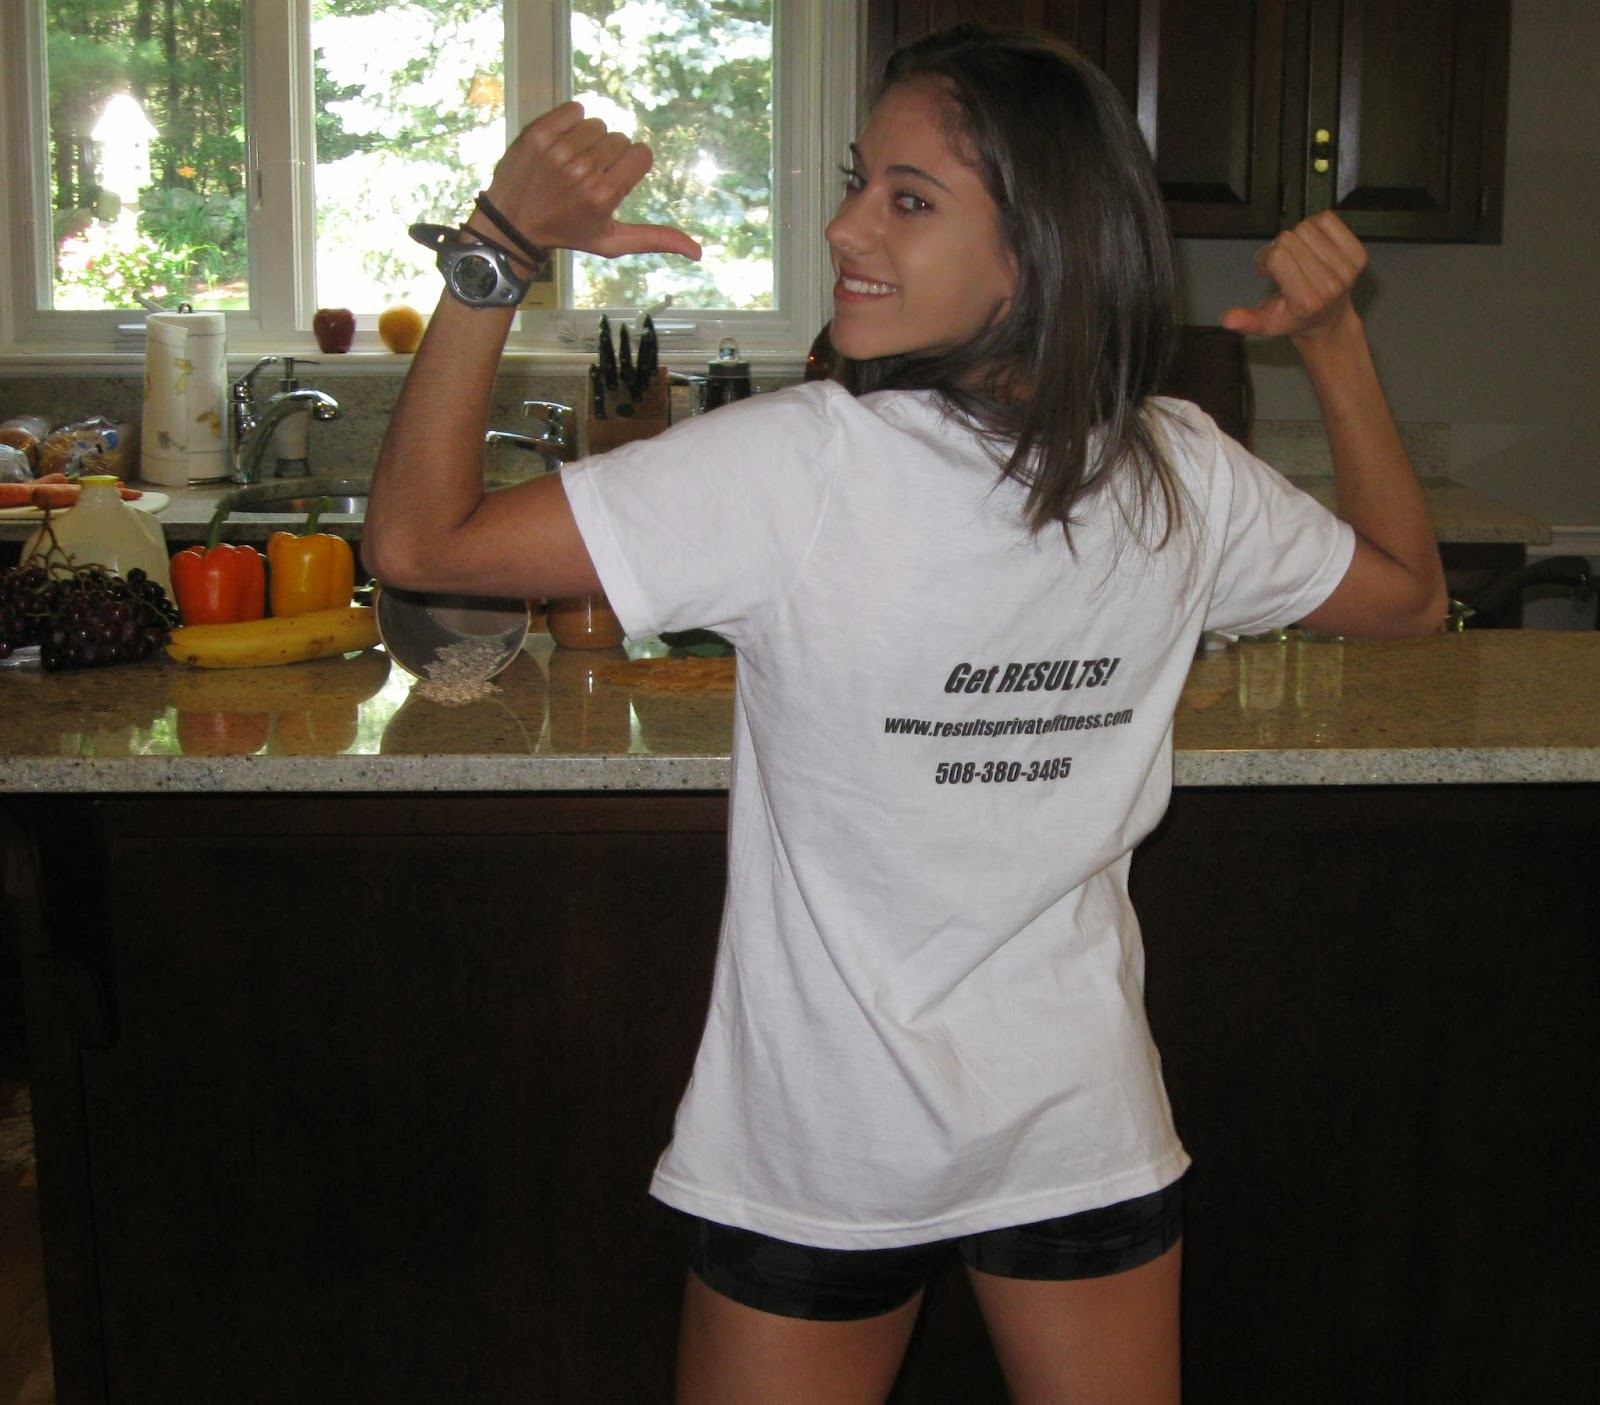 Best Boston Personal Trainer Personal Training Results Home Workouts Nutrition